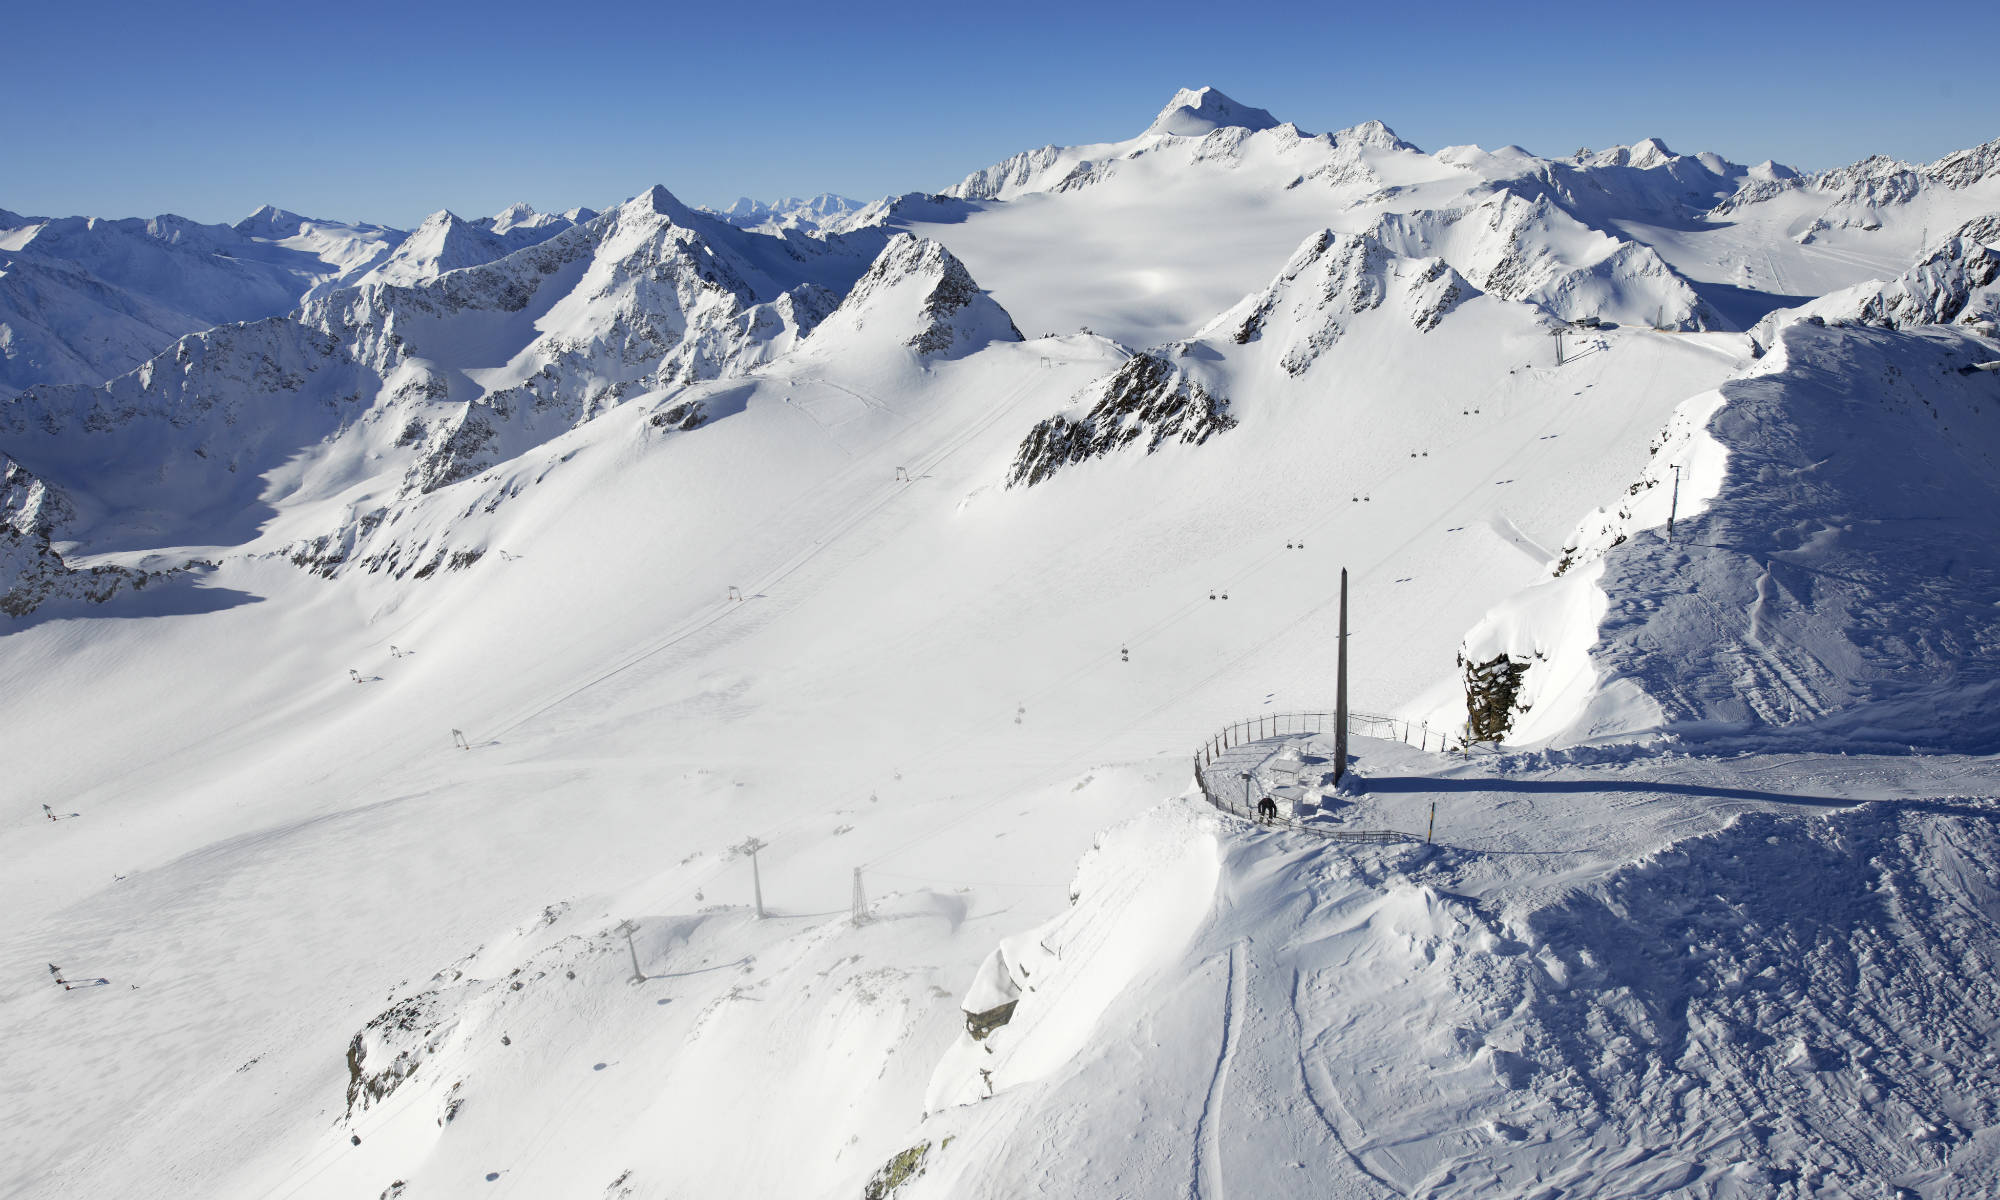 From the top of the Schwarze Schneid mountain, one has a great view of Austria's highest mountains.